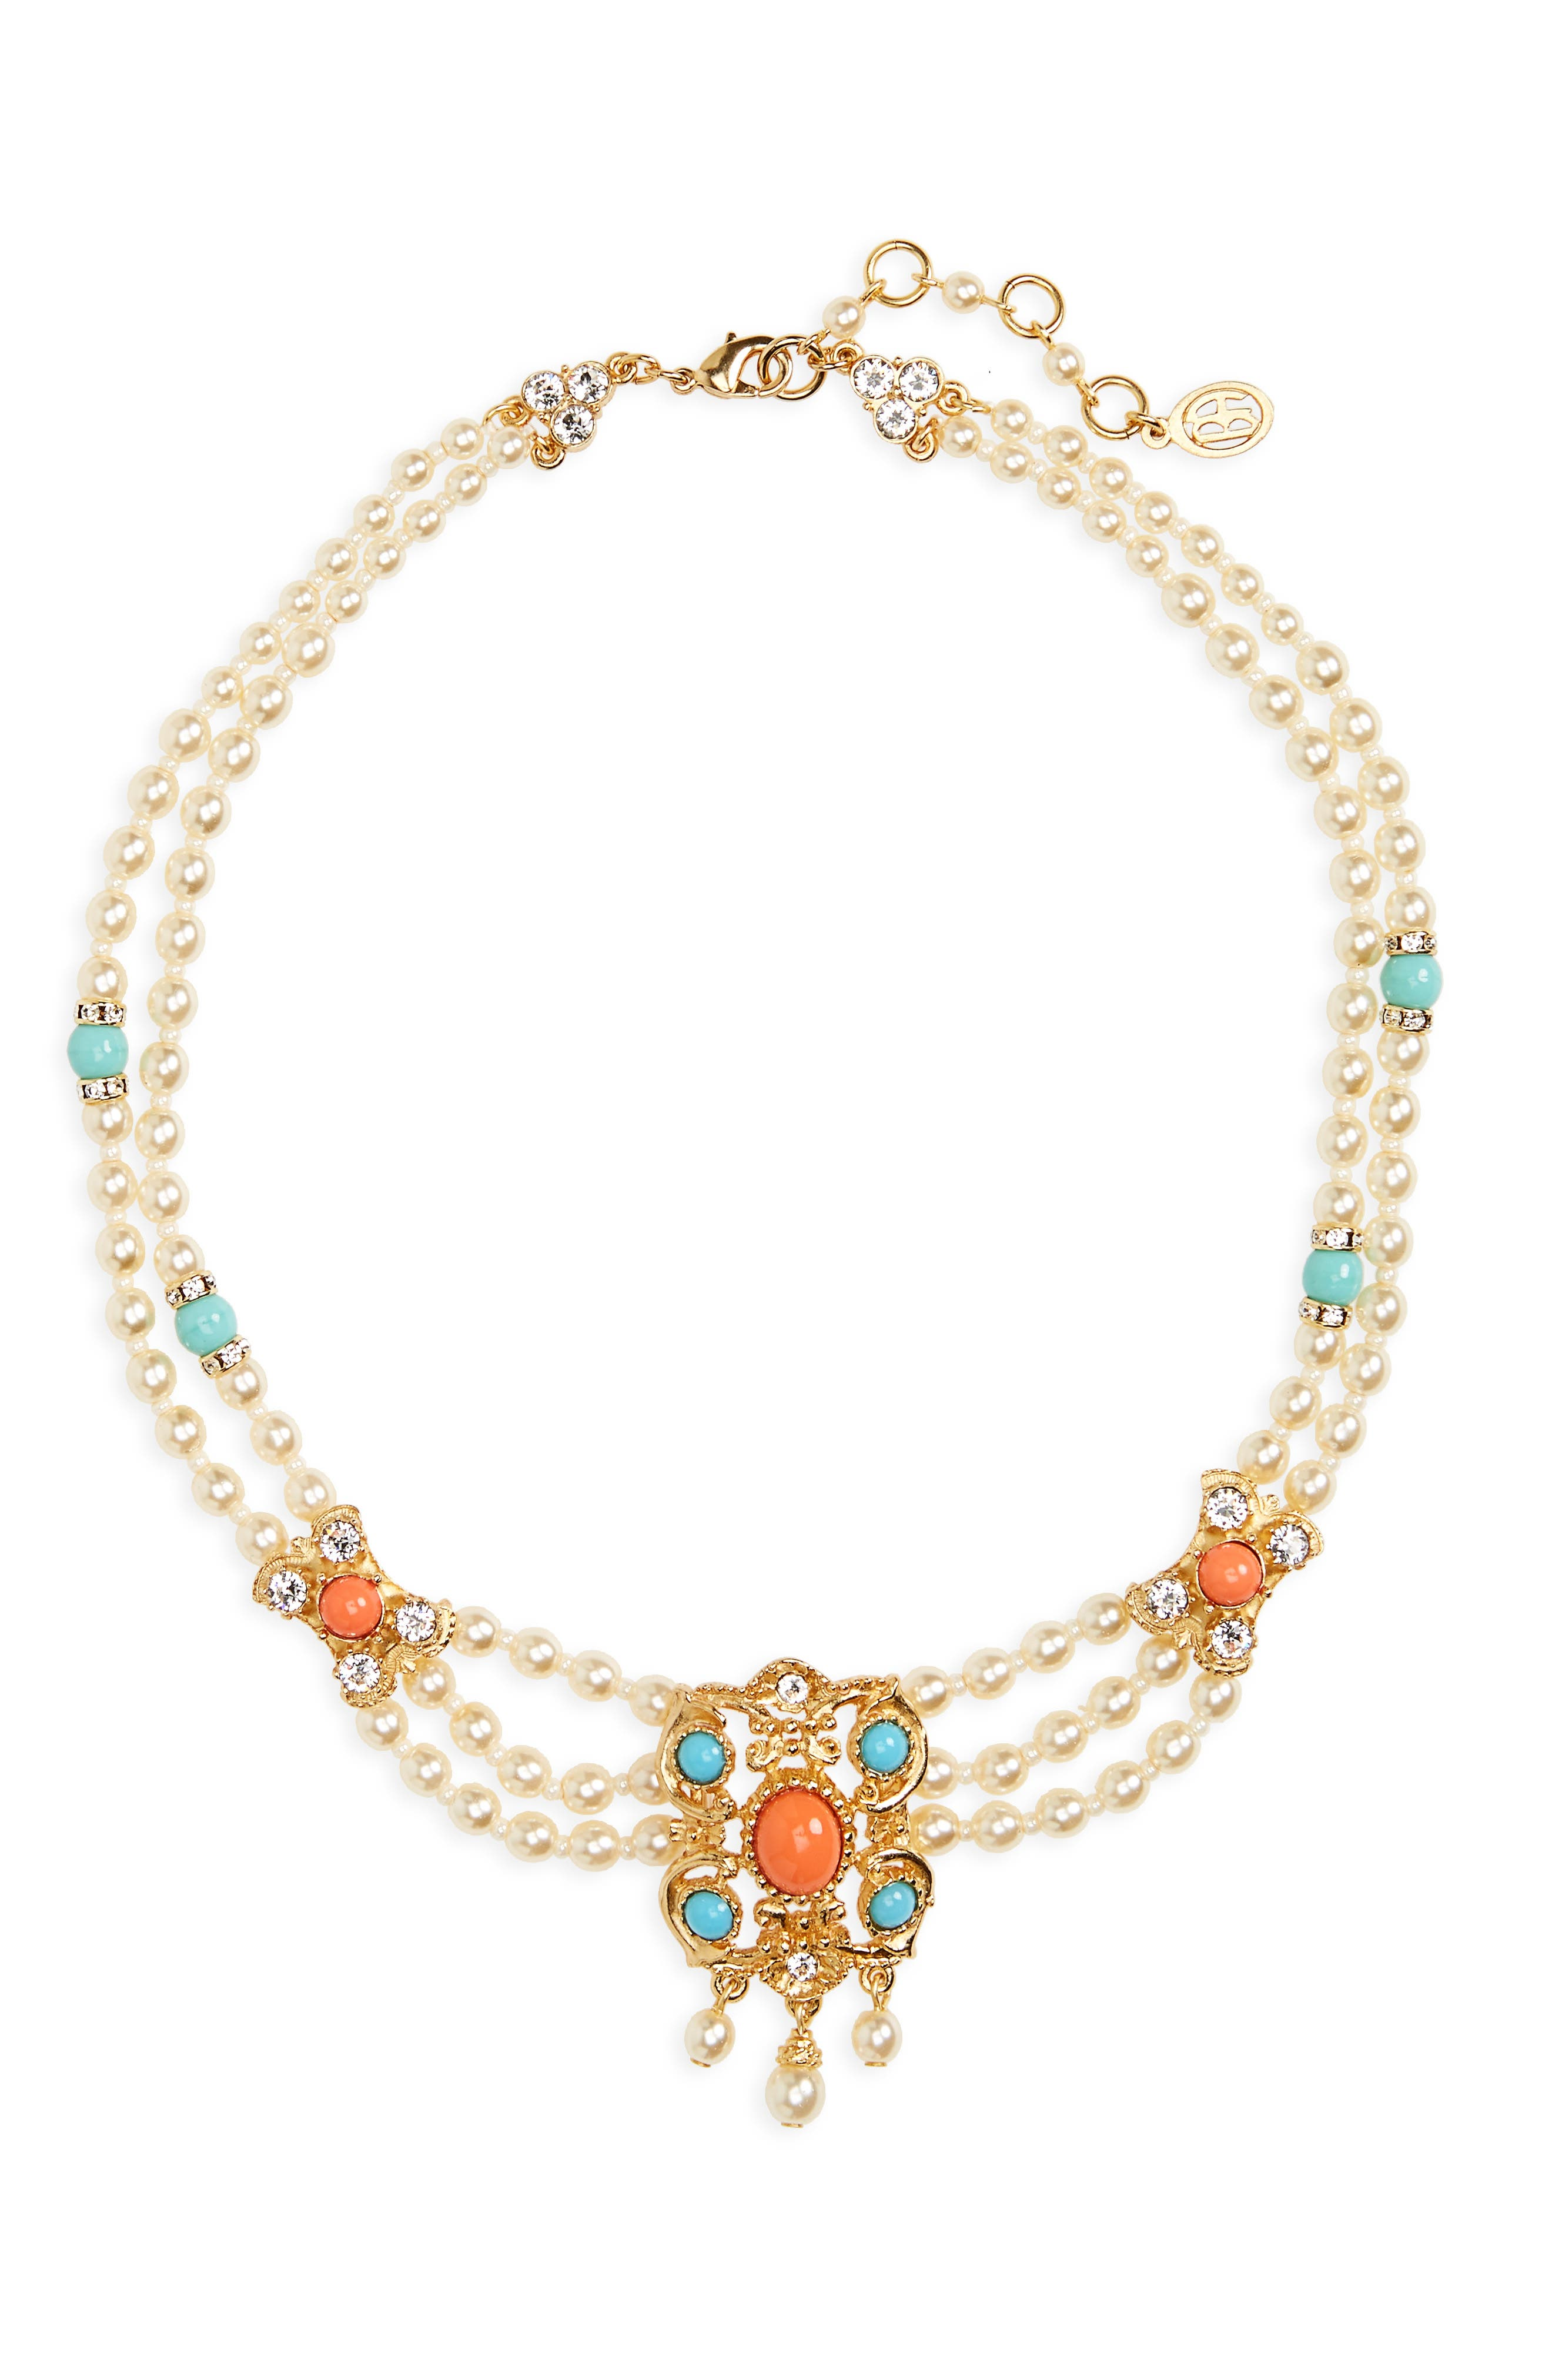 Adriatic Sea Imitation Pearl Drop Necklace,                         Main,                         color, Turquoise / Coral / Pearl